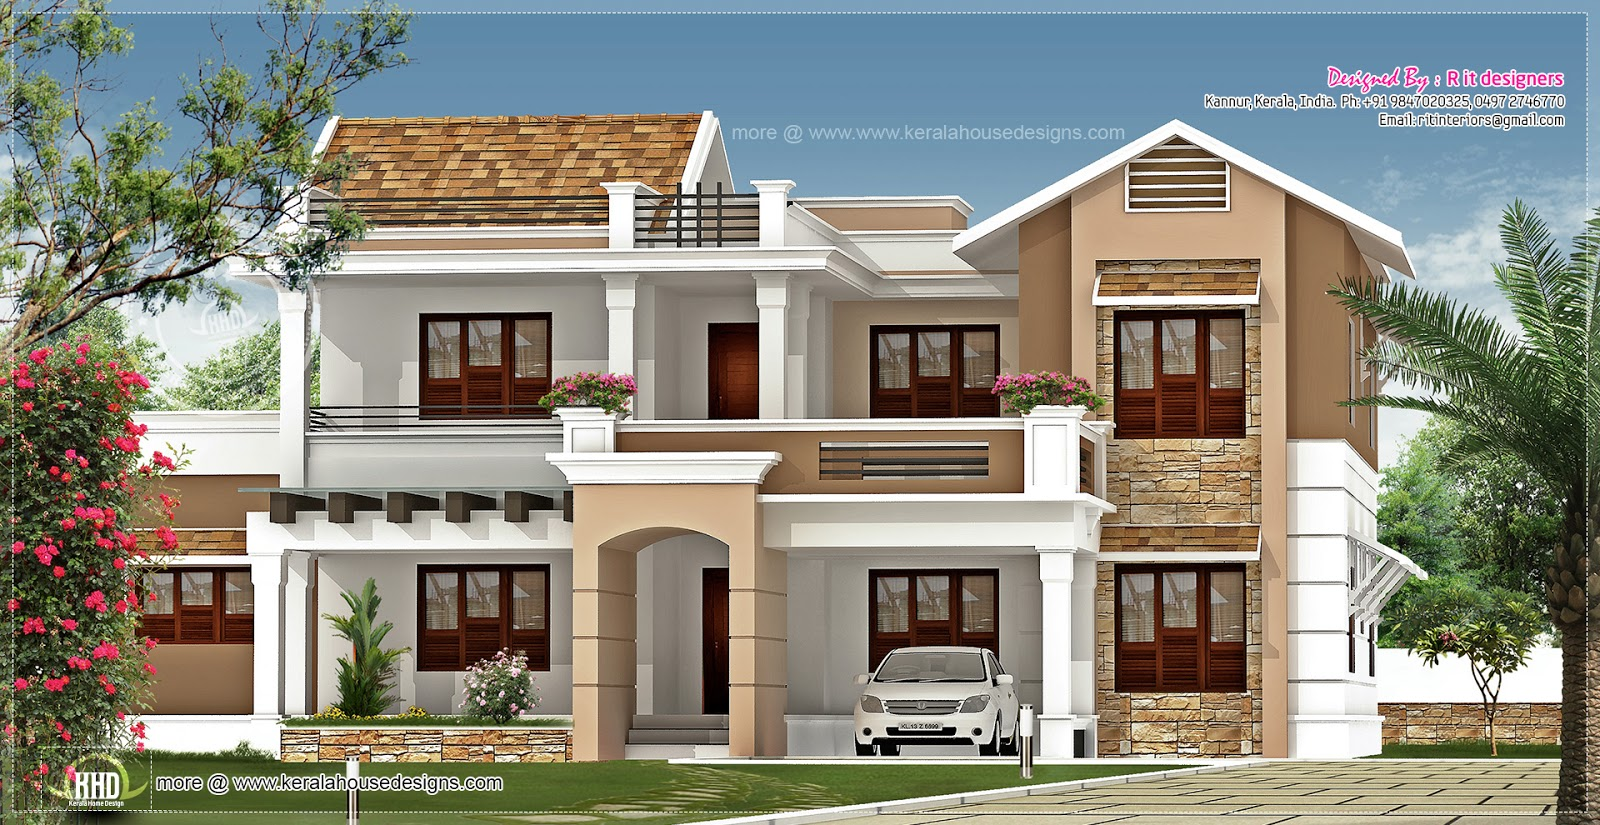 Three Bedroom Split Level Modern House Designs together with Denvers Single Family Homes By Decade 1960s further 5884 Square Feet 5 Bedrooms 5 5 Bathroom Contemporary House Plans 3 Garage 32973 likewise Large Bachelor House Plans together with House Plans With Hidden Pantry. on modern 2 story ranch style homes